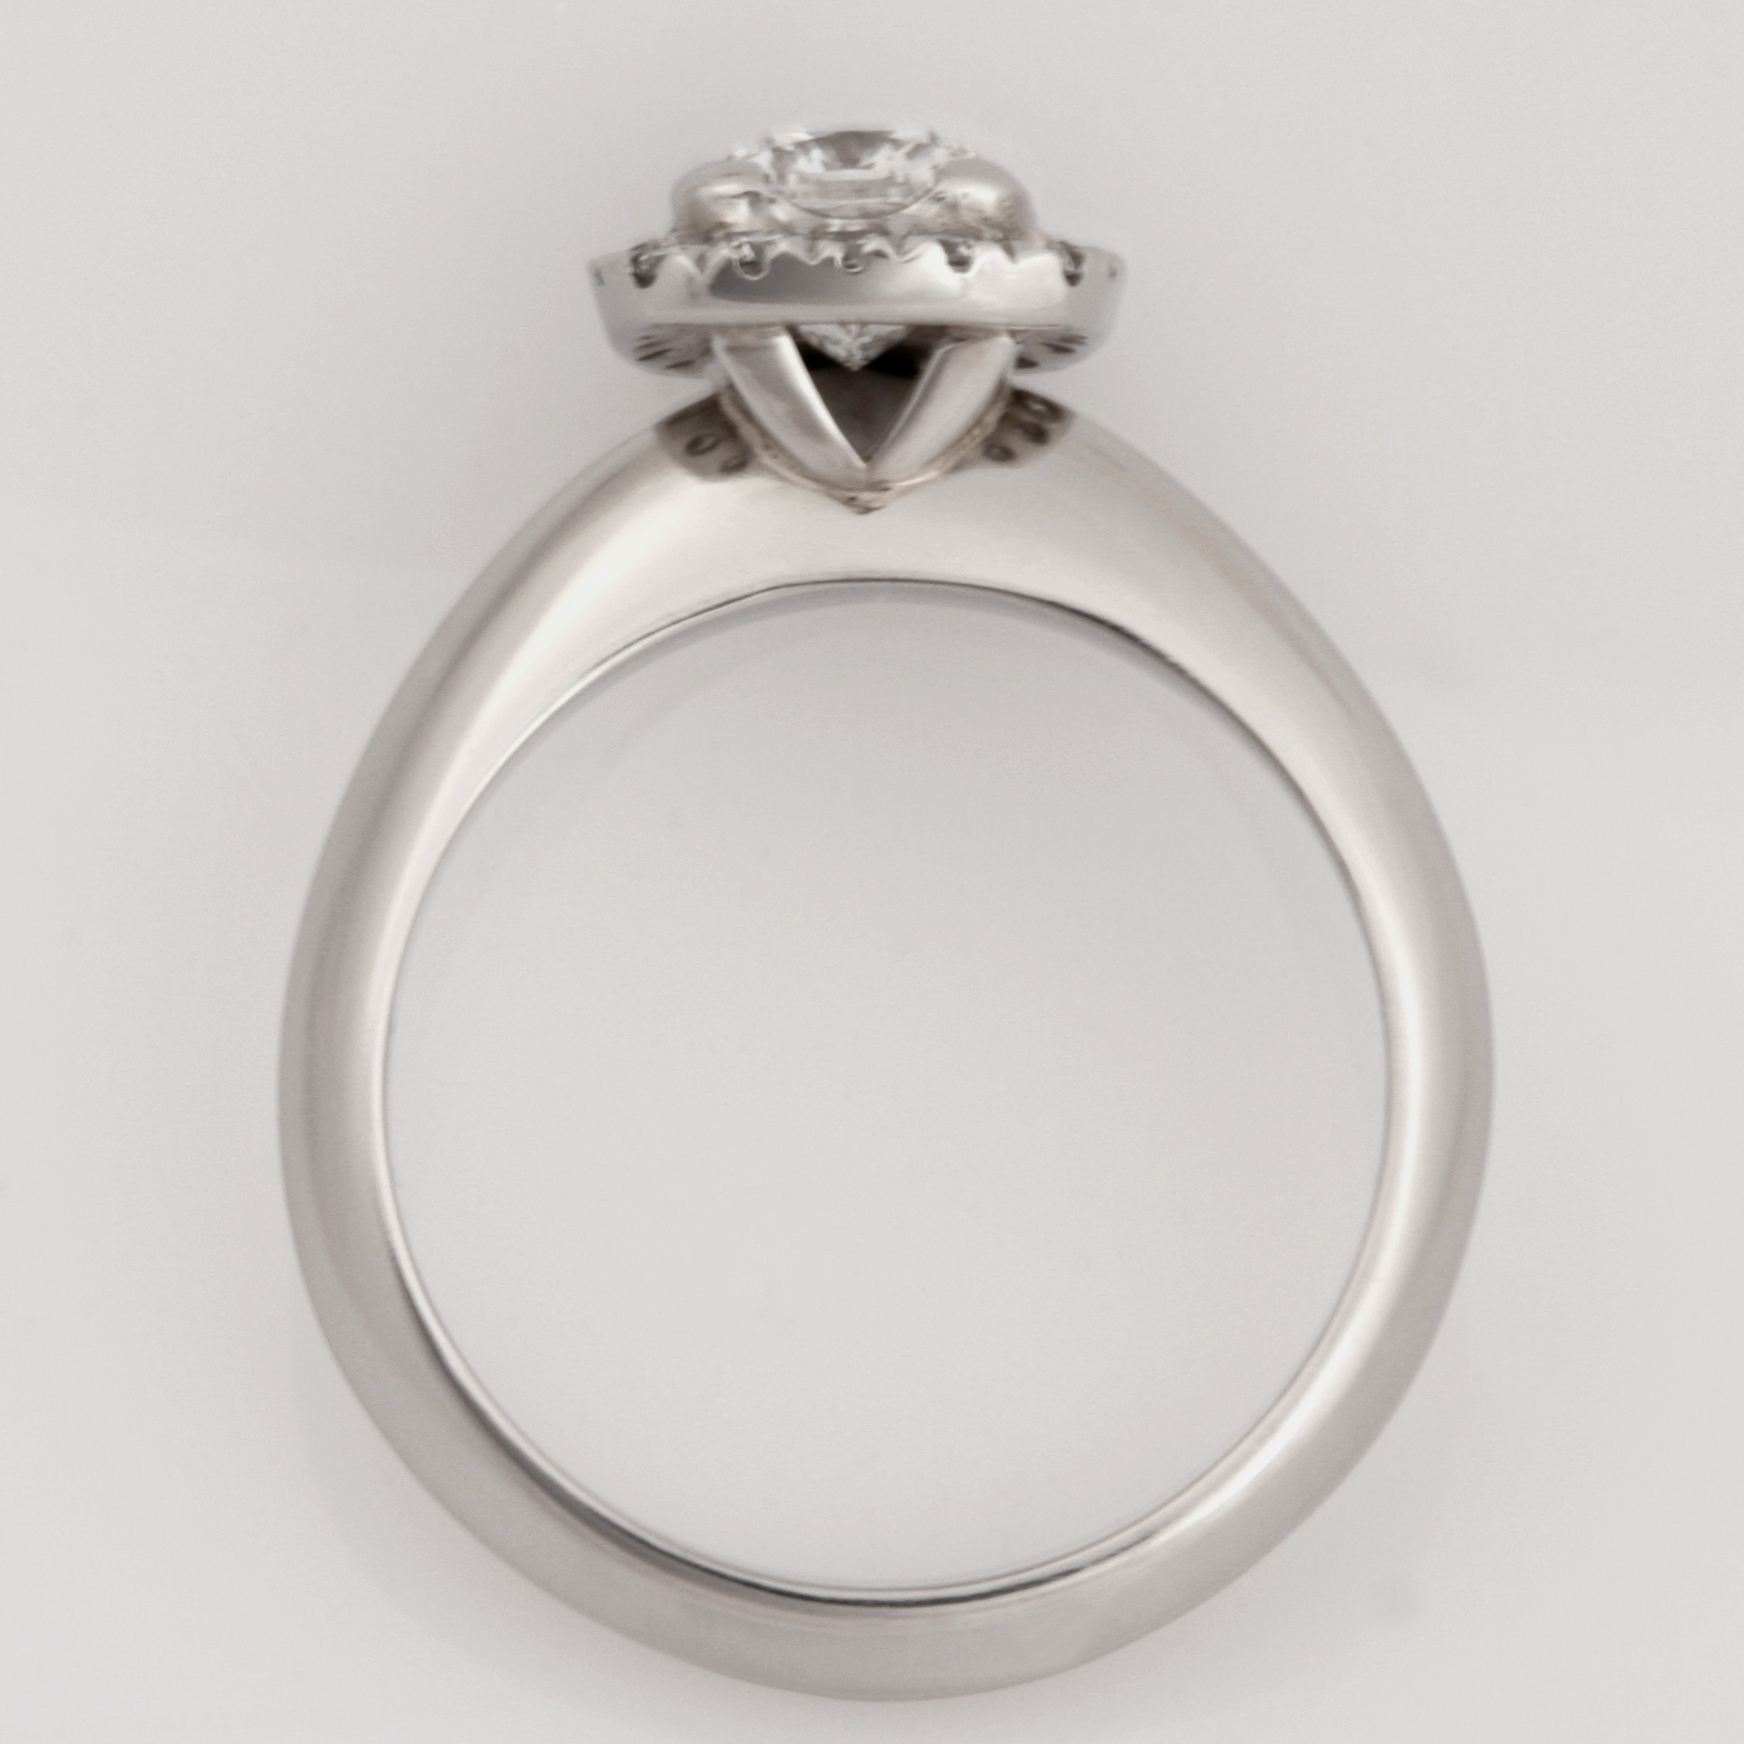 Handmade ladies Platinum engagement ring featuring a cushion cut diamond surrounded by a halo of round diamonds.